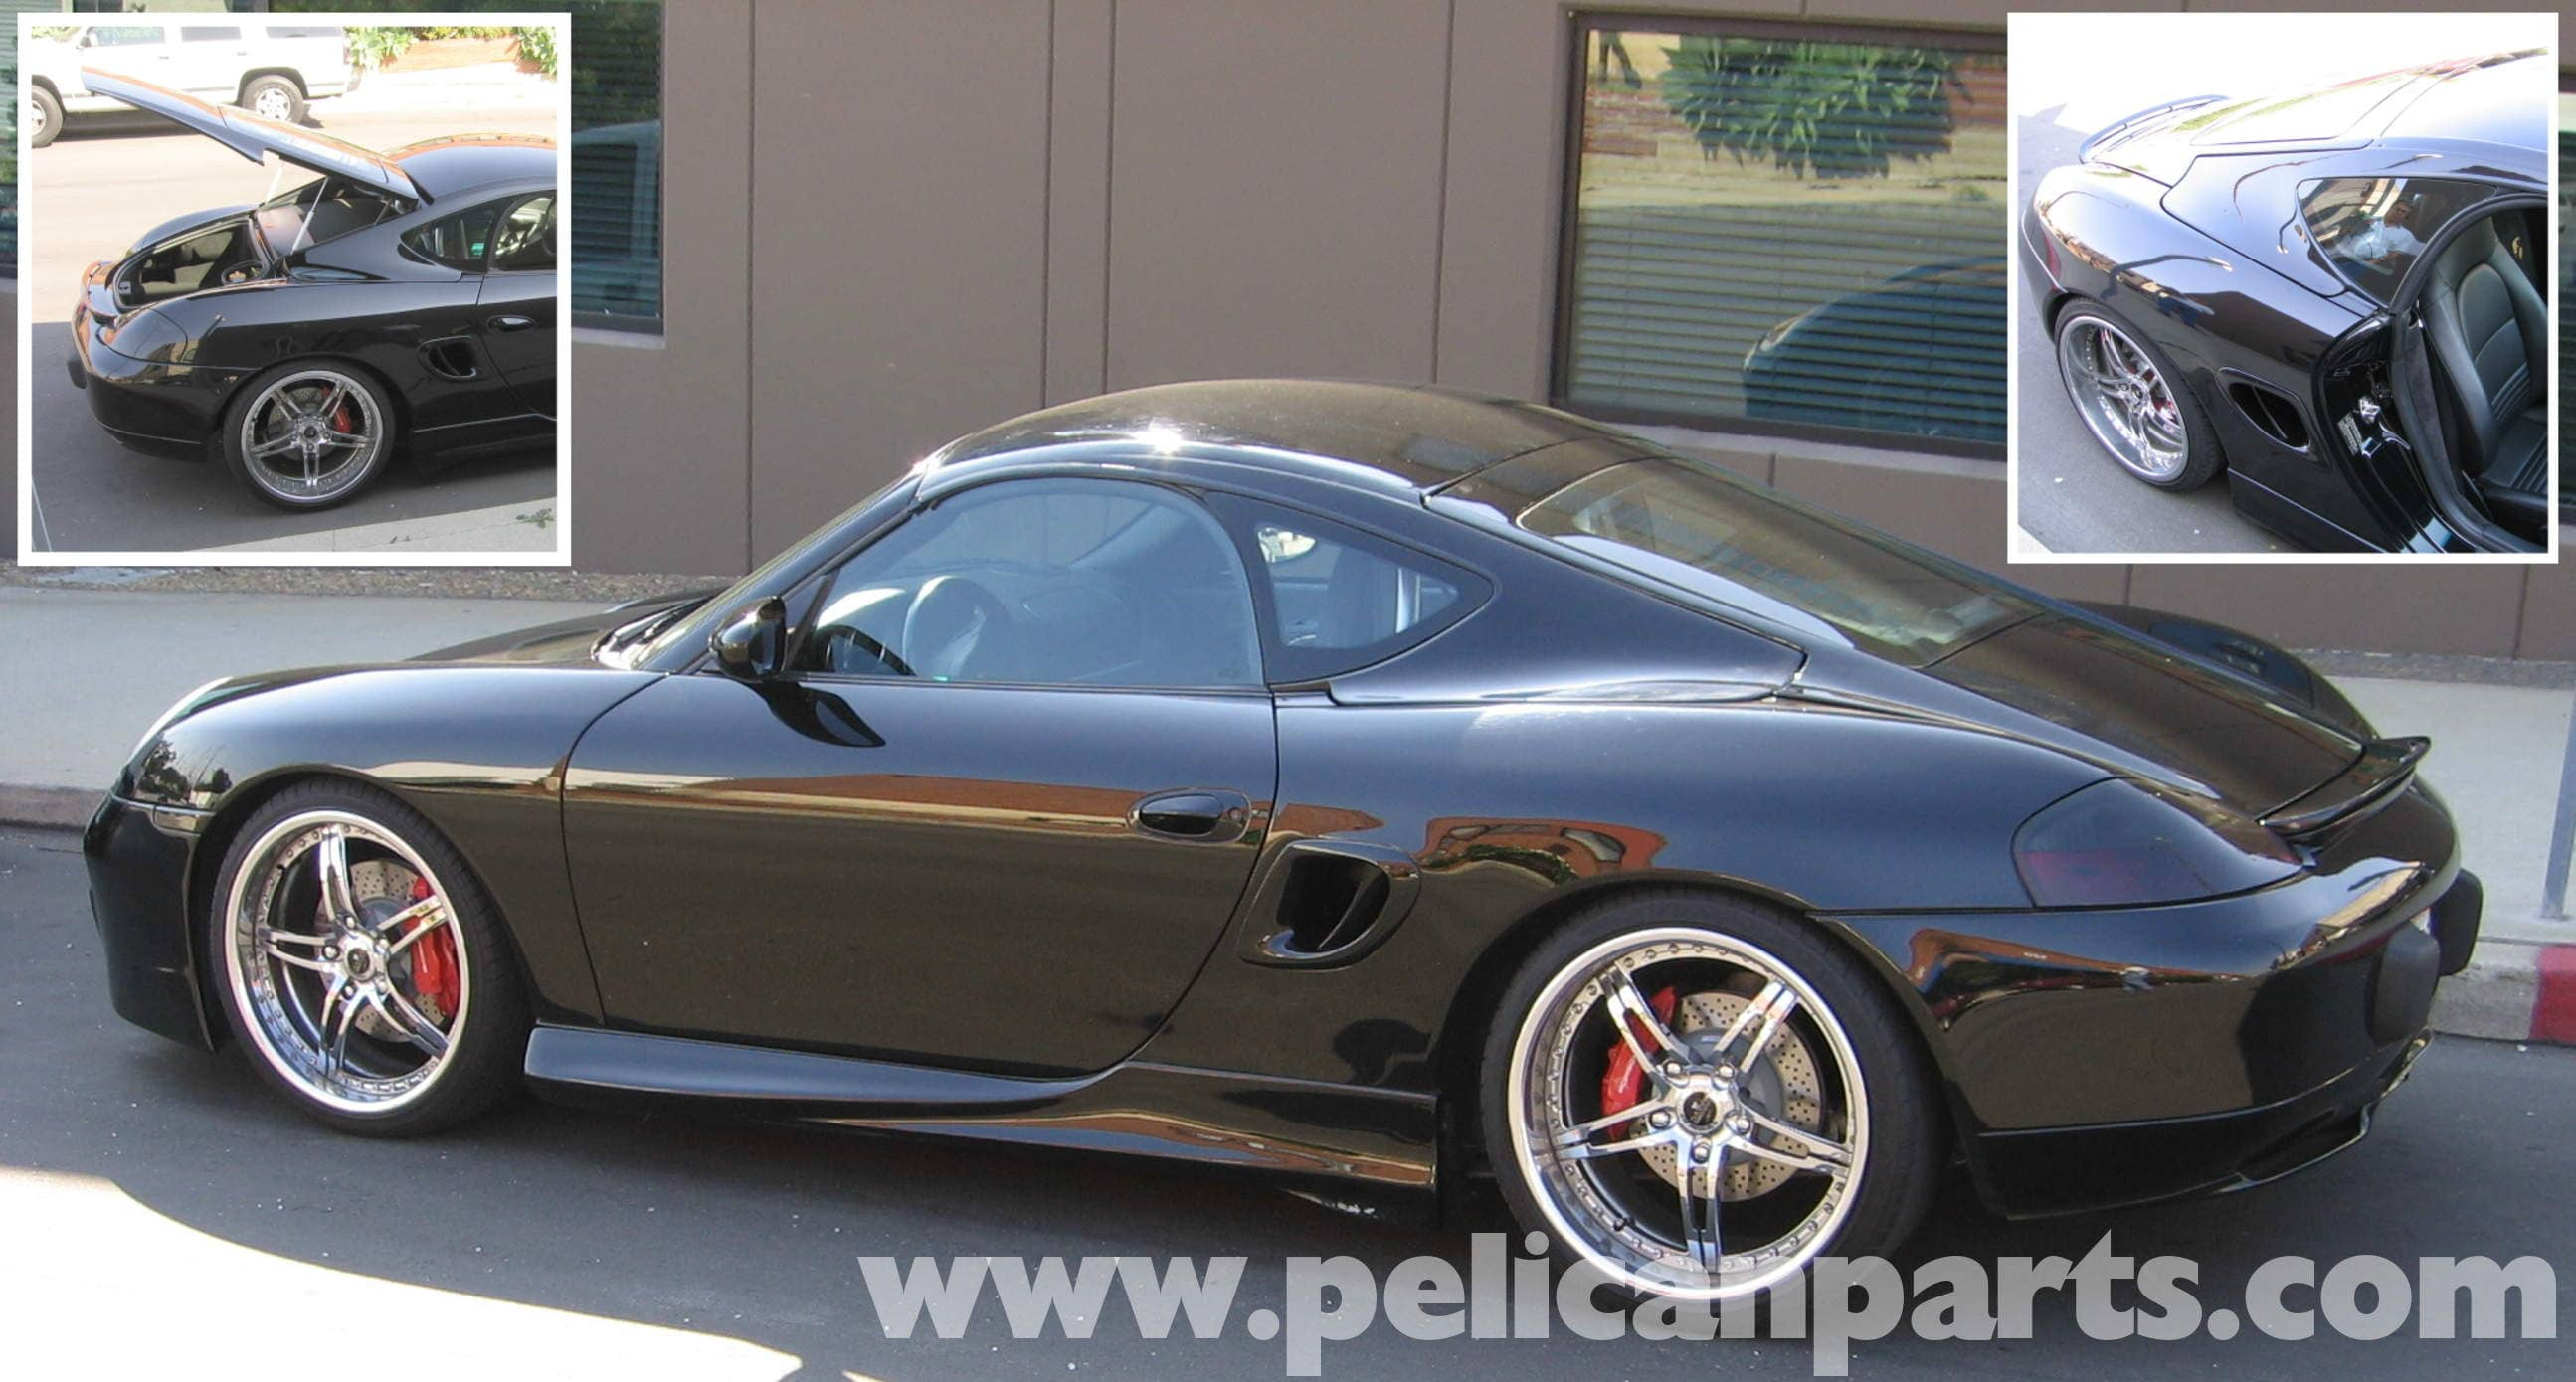 porsche boxster hardtop installation kit 986 987 1997 08 pelican parts technical article. Black Bedroom Furniture Sets. Home Design Ideas